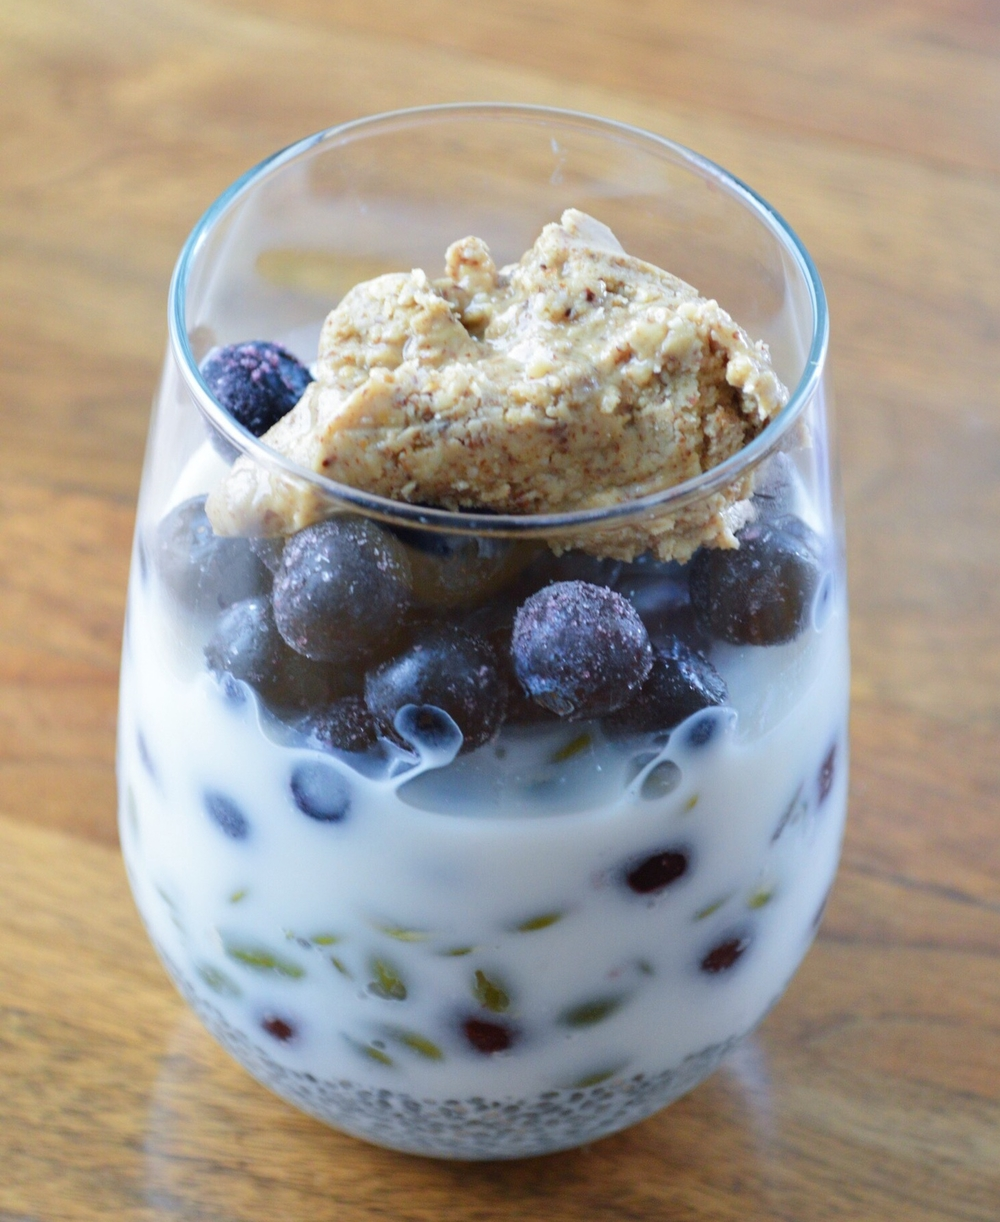 On-The-Go-Chia-Seed-Breakfast-Parfait-LaurenSchwaiger-Blog.jpg